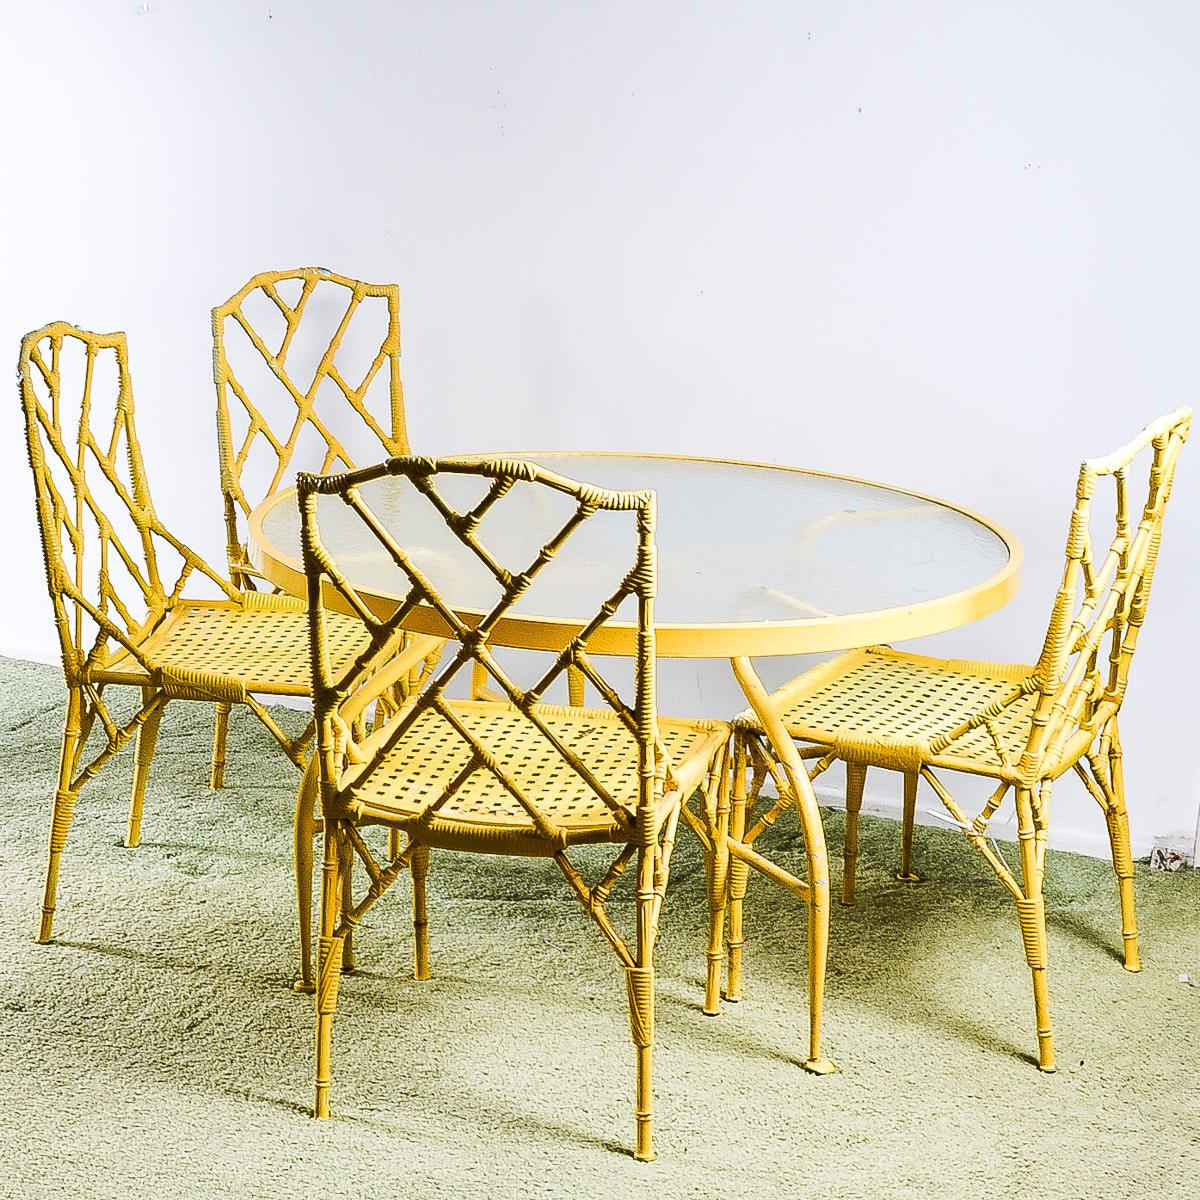 vintage cast metal bamboo style patio table and chairs ebth vintage cast metal bamboo style patio table and chairs